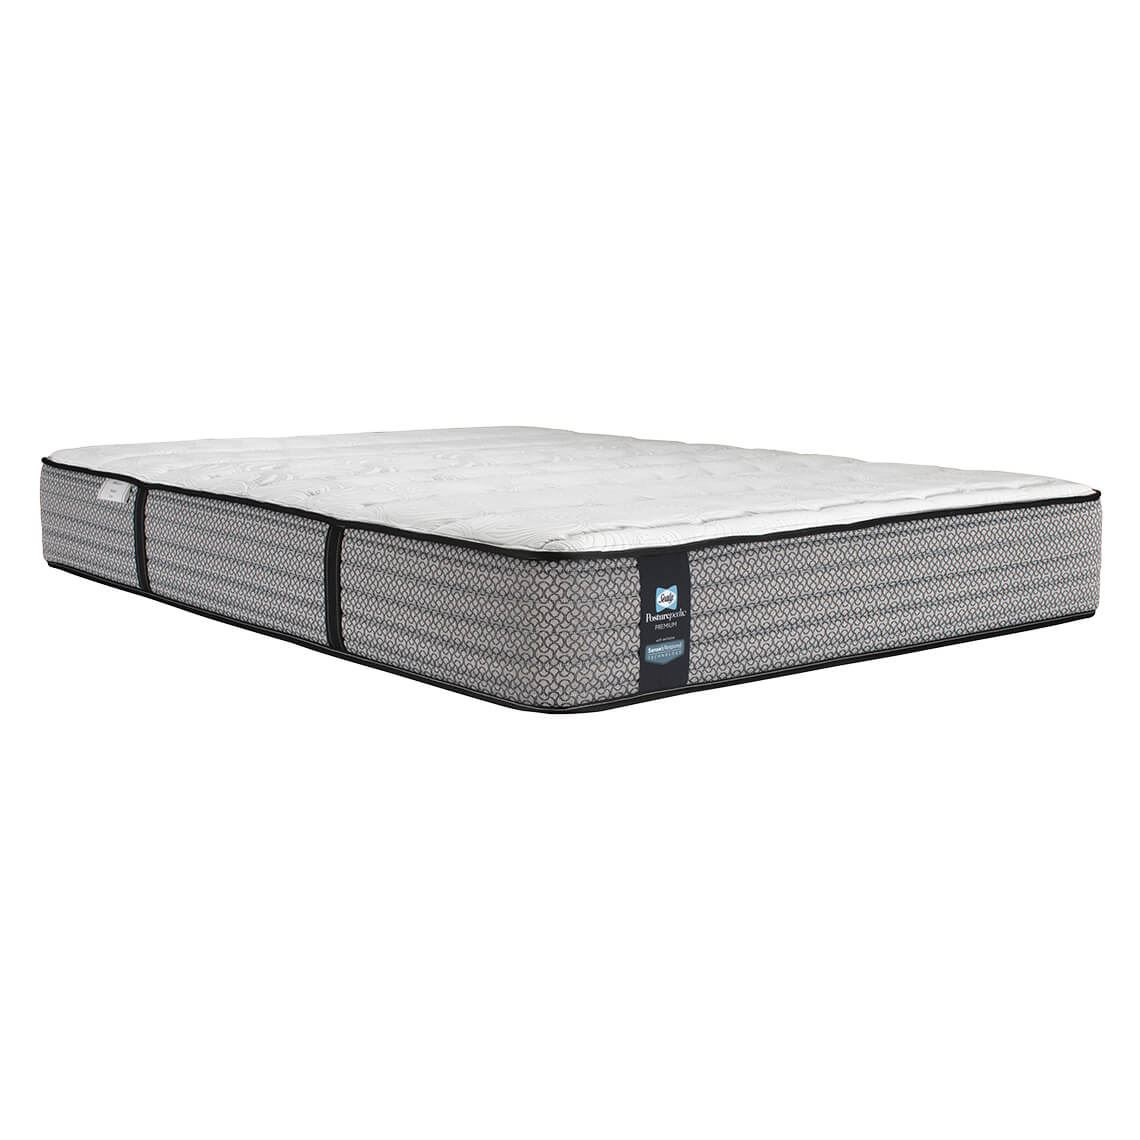 Sealy Posturepedic Margot Firm Queen Mattress Mattress Double Mattress Size Sealy Posturepedic